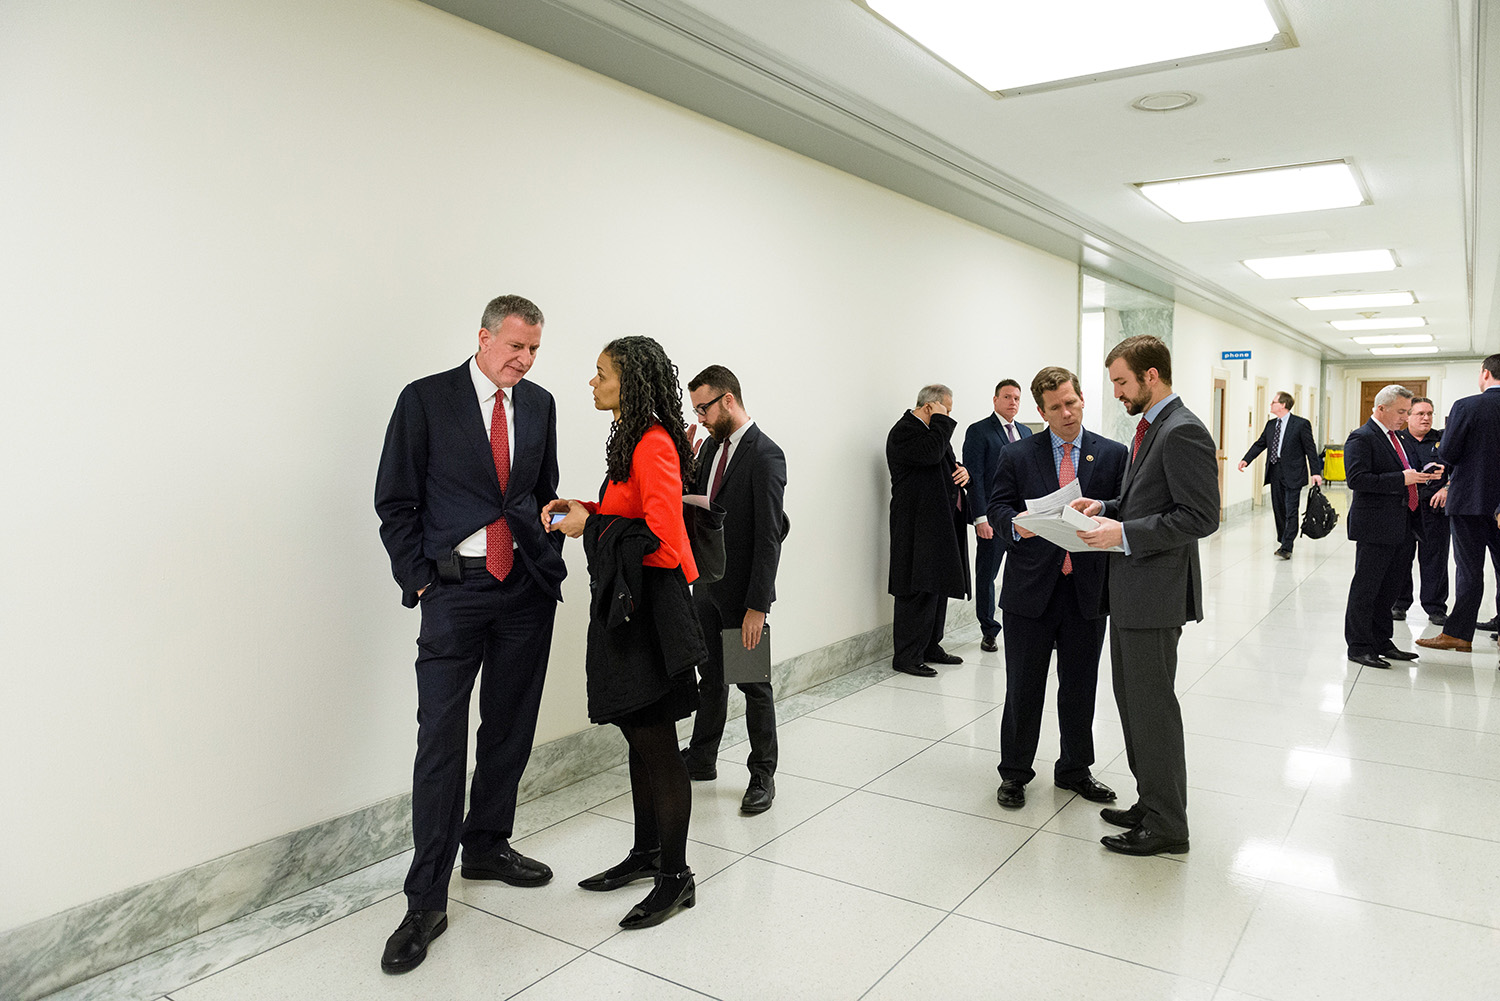 Mayor Bill de Blasio huddles with his counsel Maya Wiley before meeting with the city's Congressional delegation.